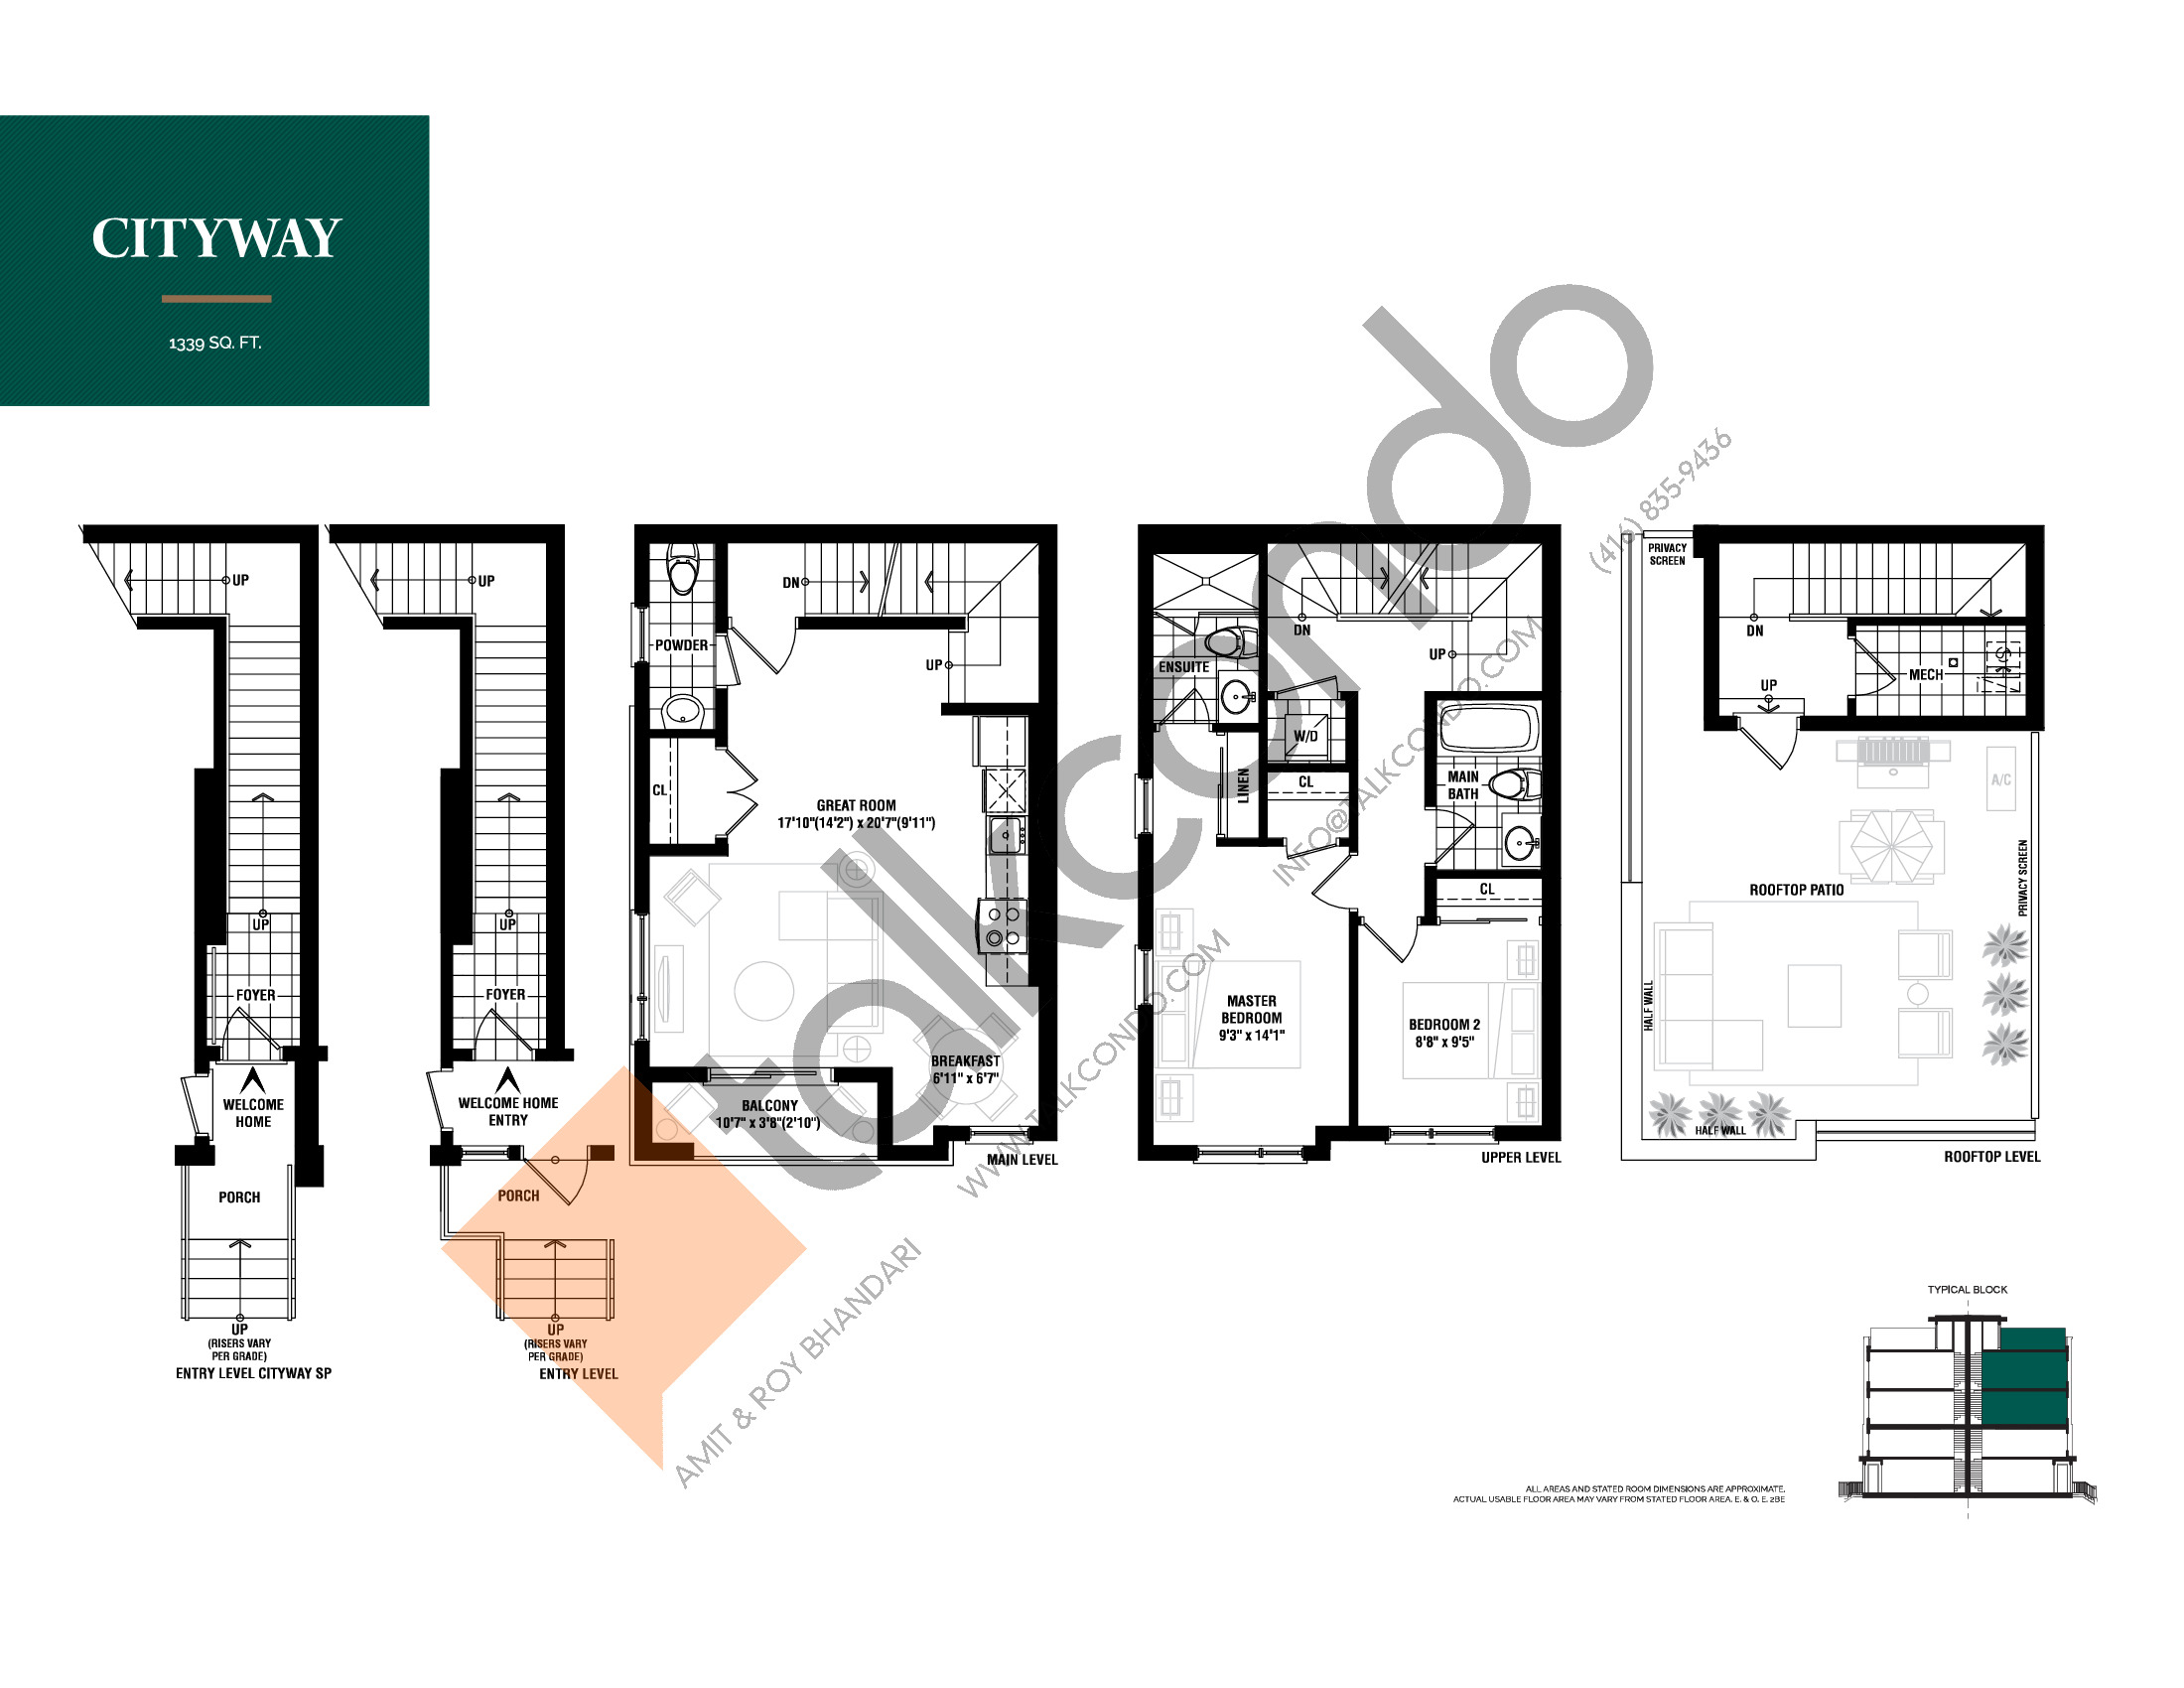 Cityway Floor Plan at The Way Urban Towns - 1339 sq.ft